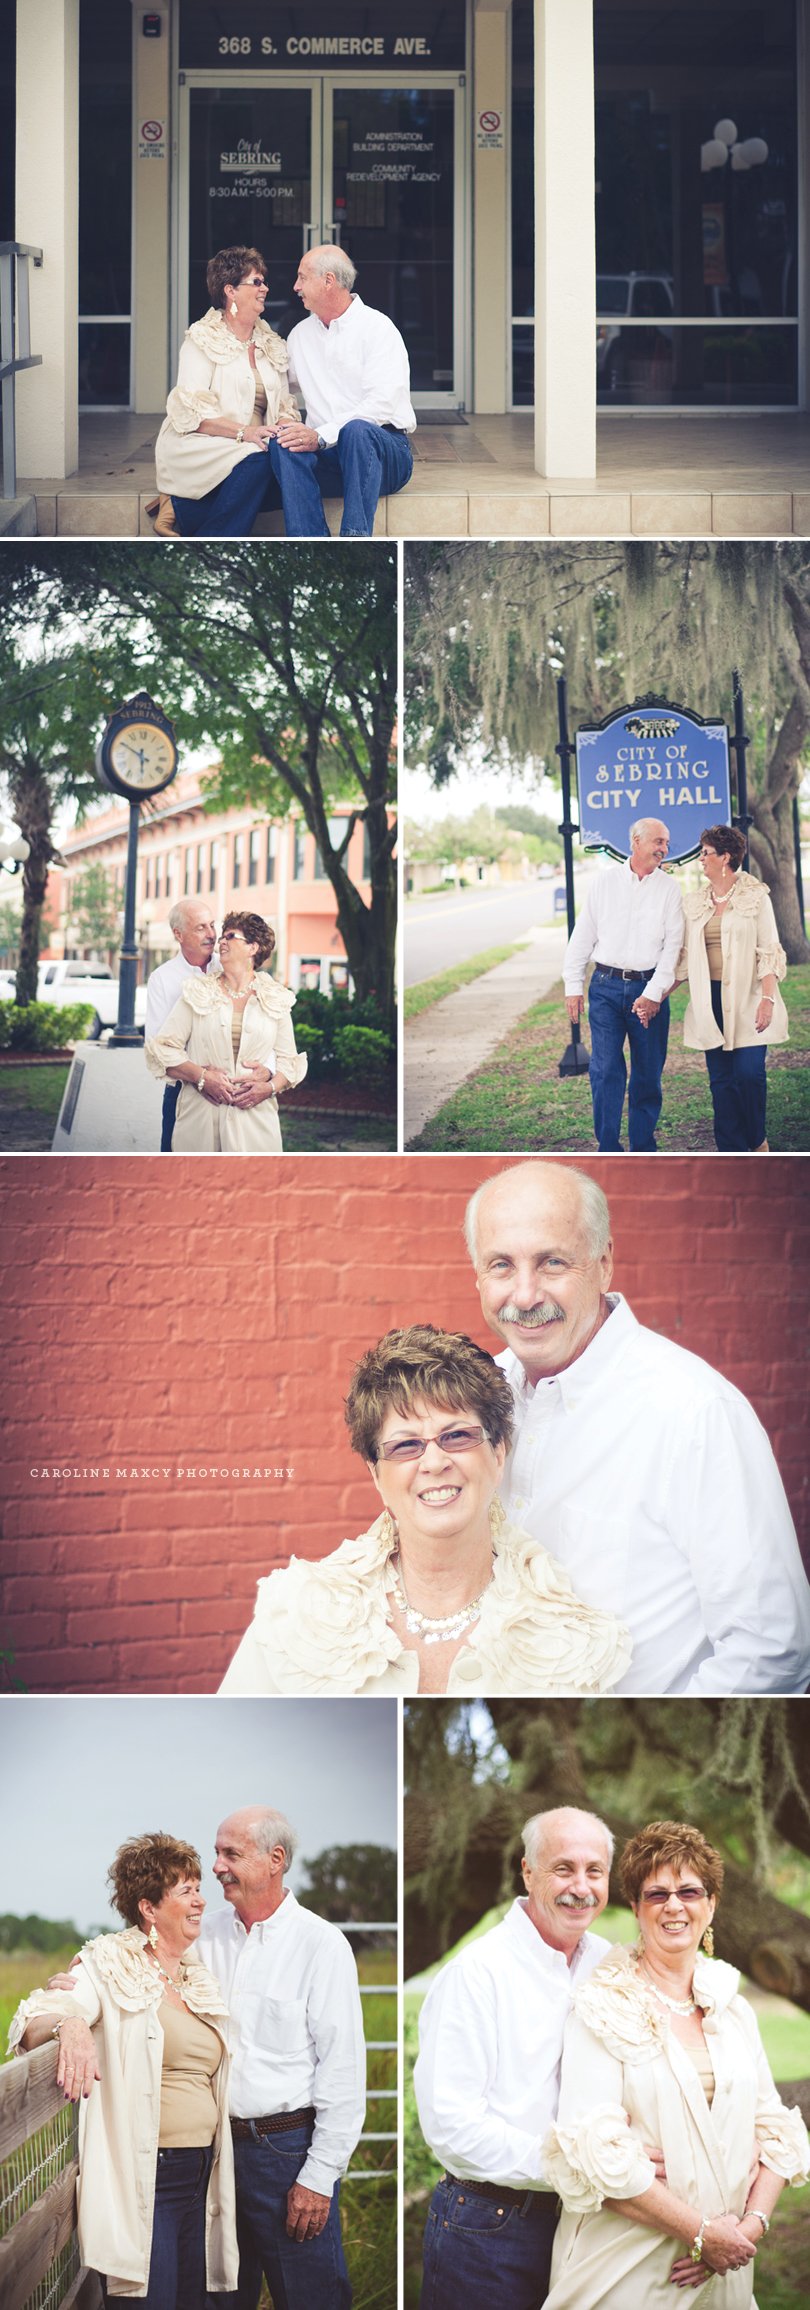 2012_CarolineMaxcyPhotography_Fall_Recap12